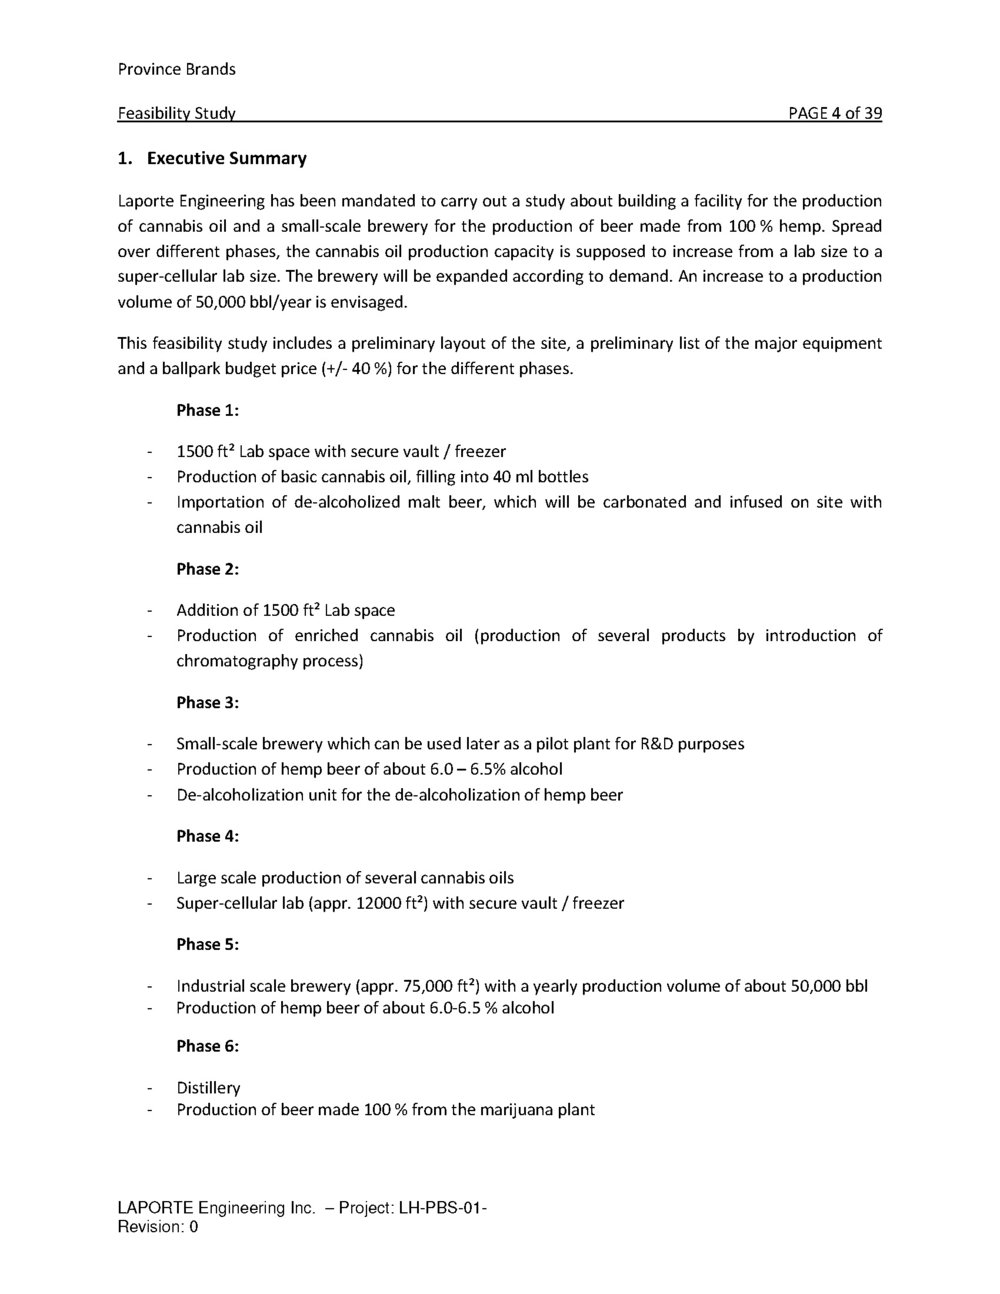 LH-PBS-01_Feasibility Study Report_01_Page_04.jpg